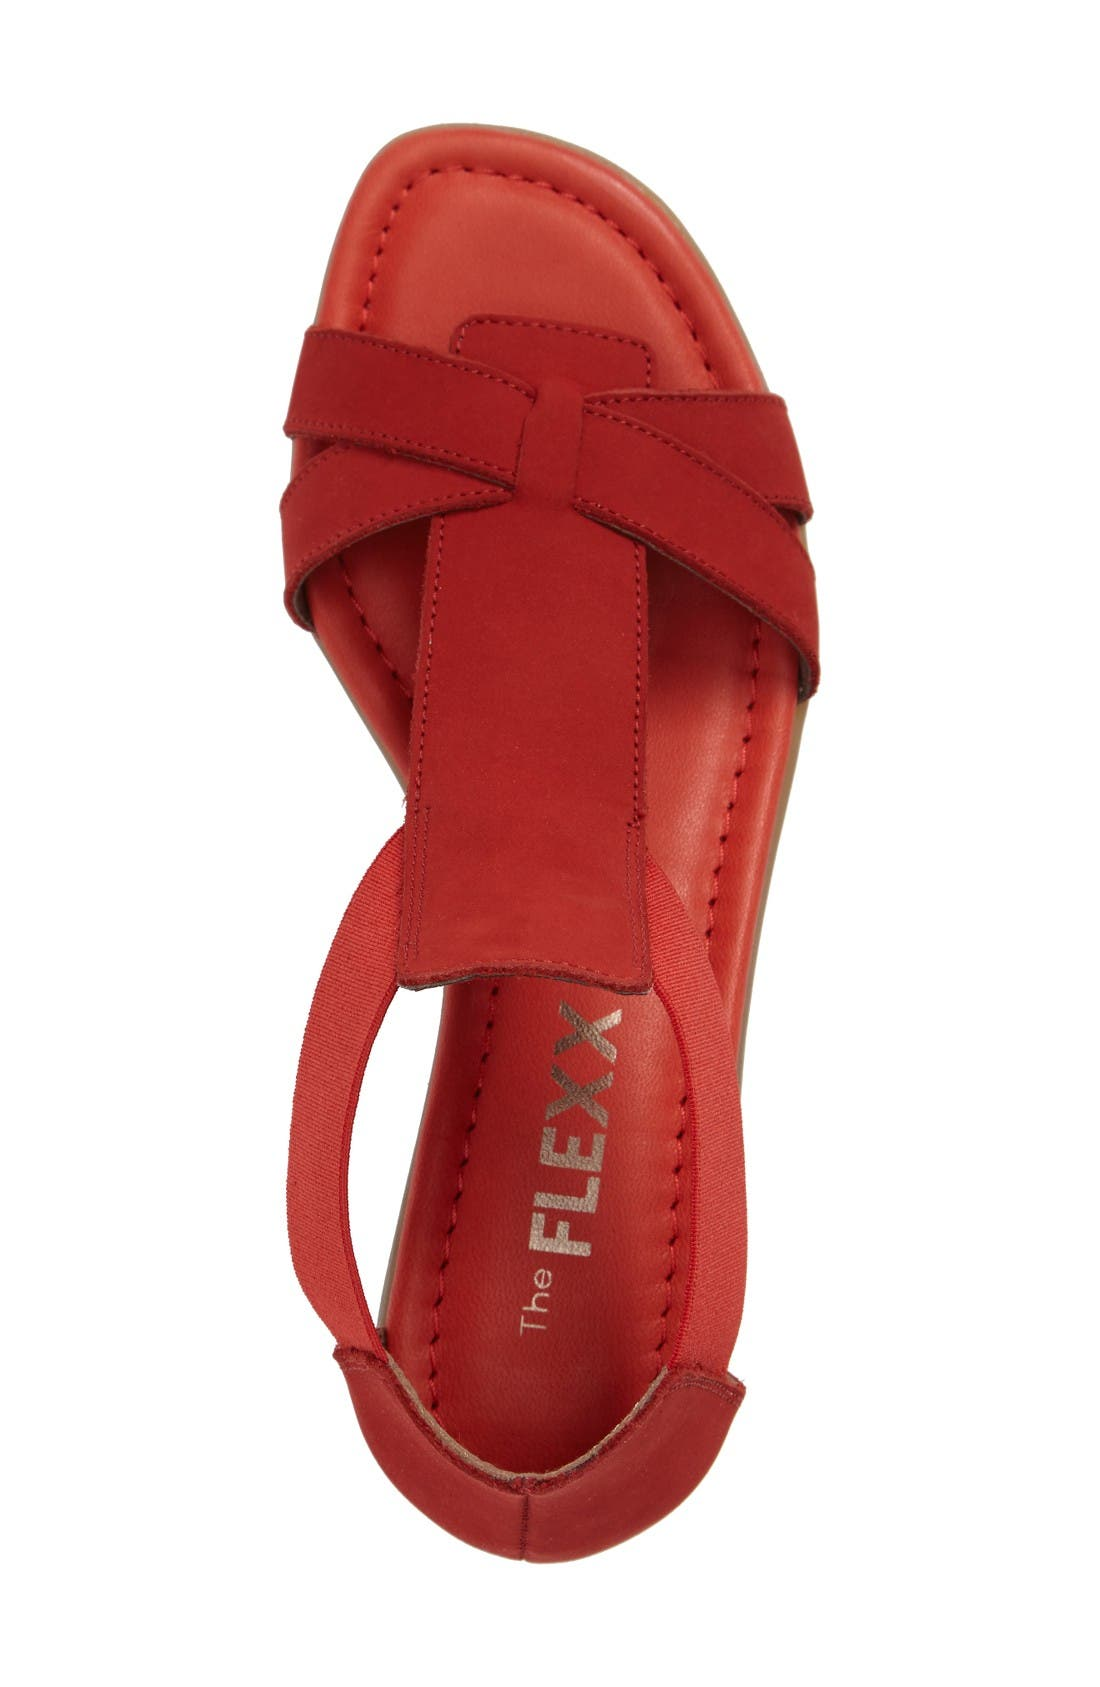 'Band Together' Sandal,                             Alternate thumbnail 3, color,                             Cherry Nubuck